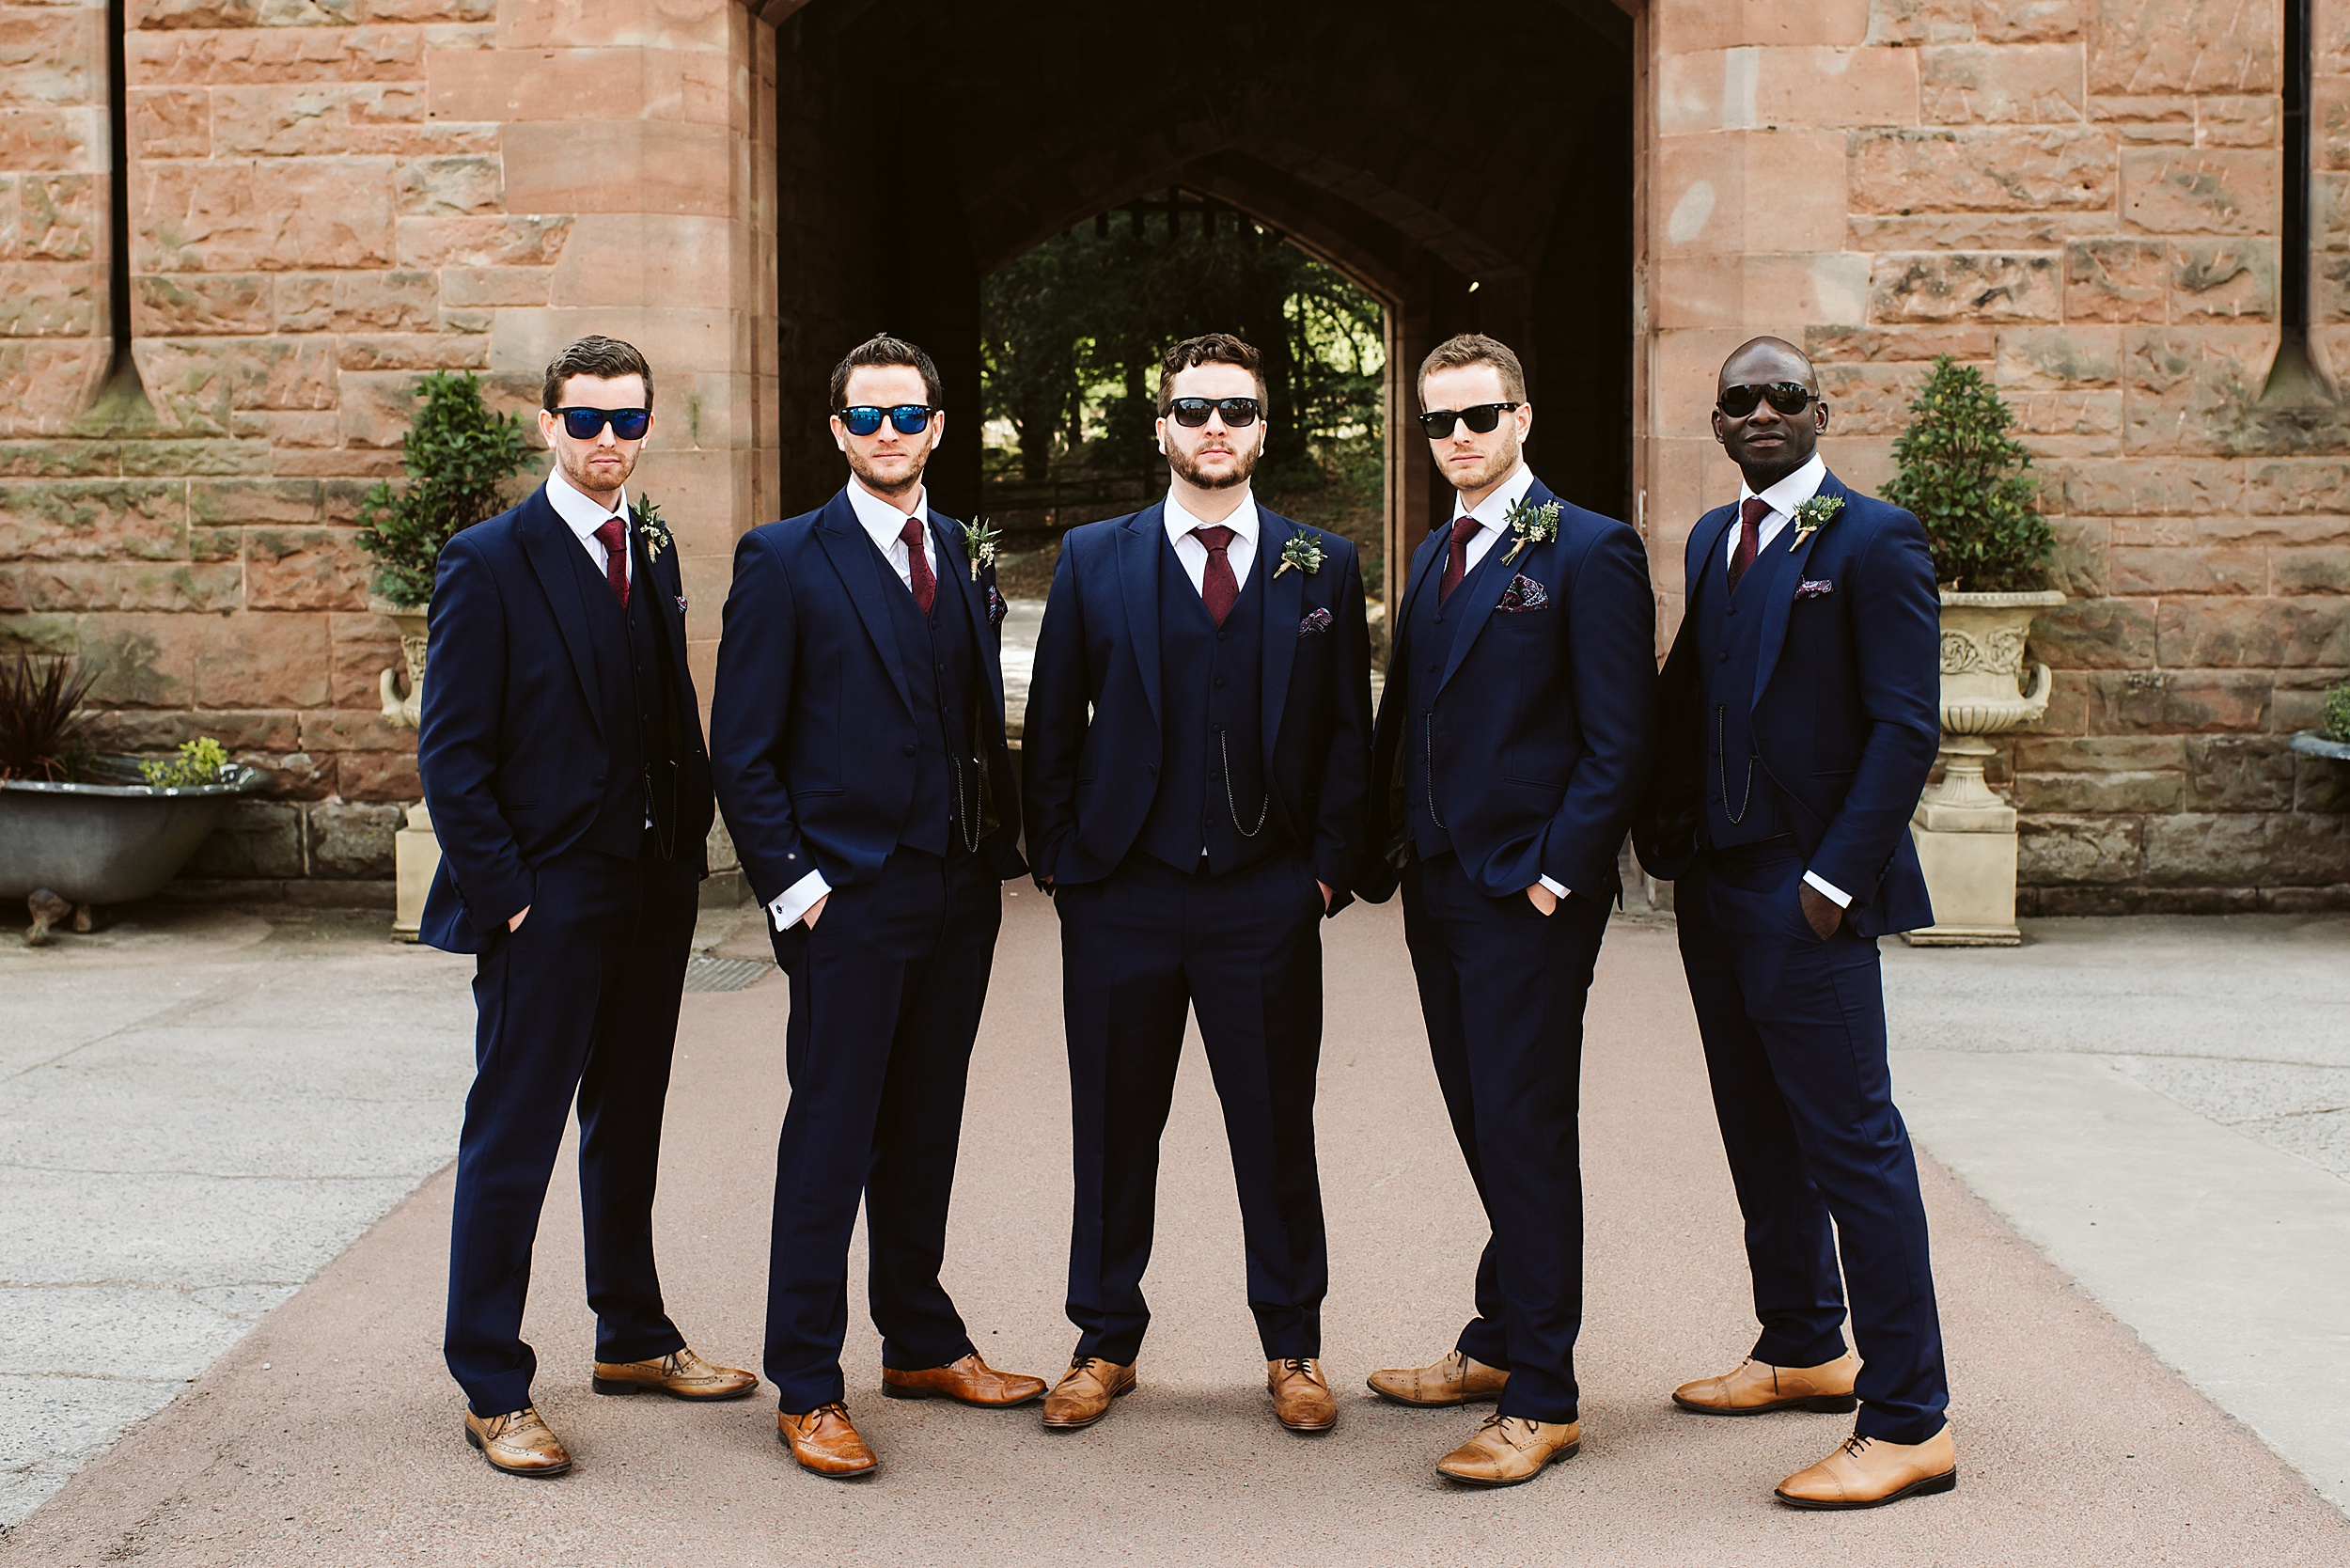 Peckforton_Castle_Cheshire_Toronto_Wedding_Photographer_UK_Destination_Wedding_0063.jpg